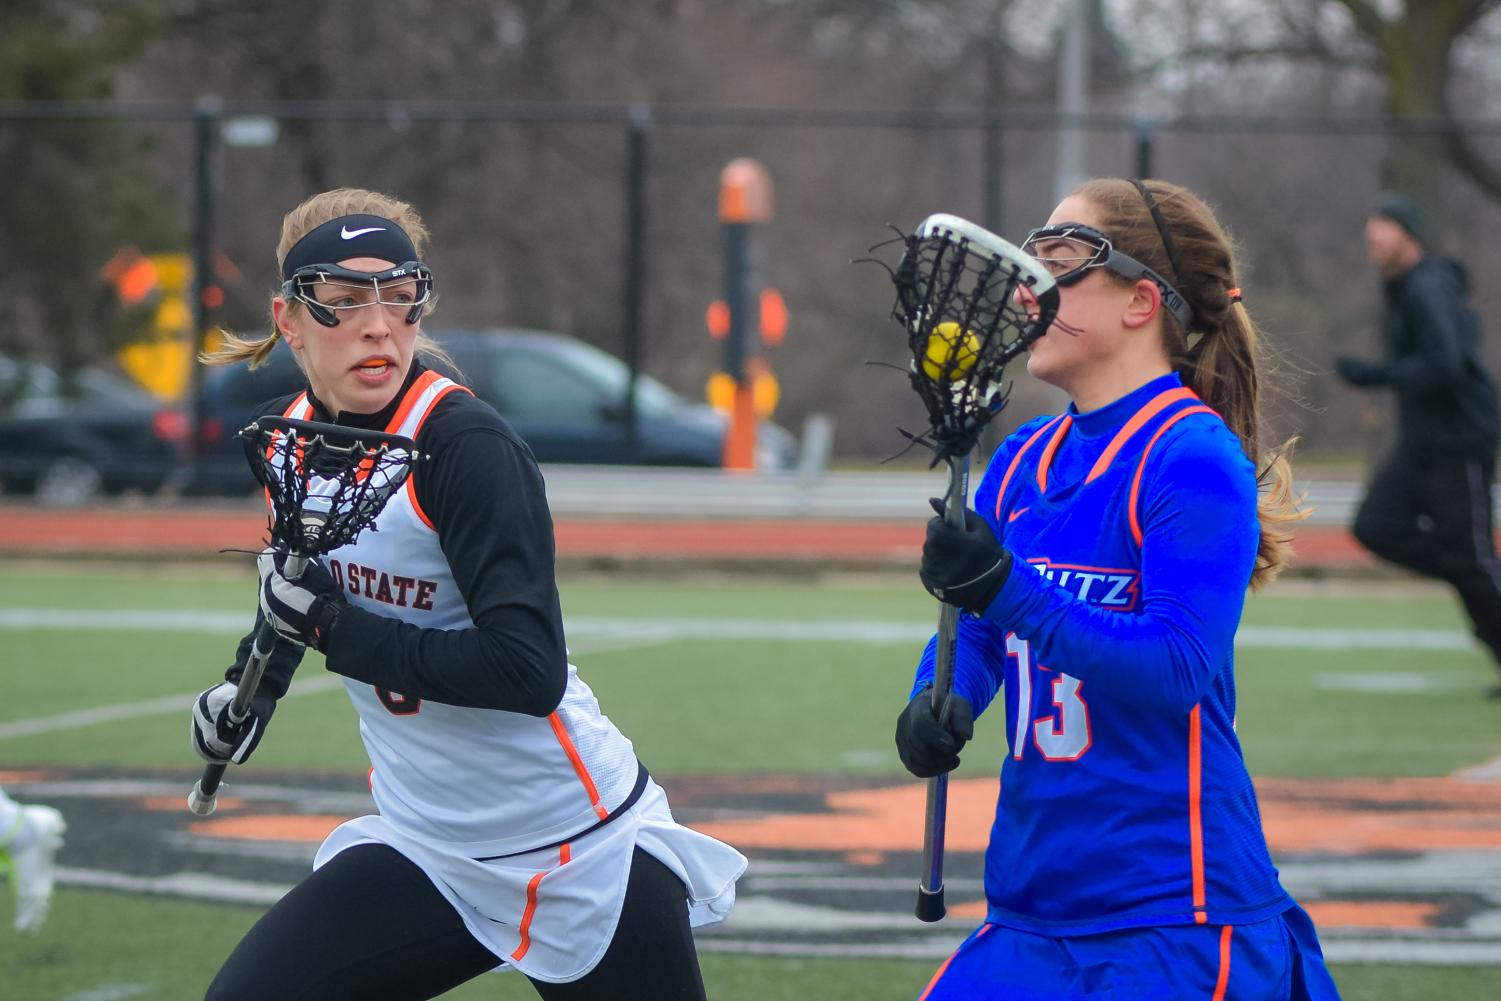 Ally Ruggieri is second in scoring for Women's Lacrosse this year with 43 points.